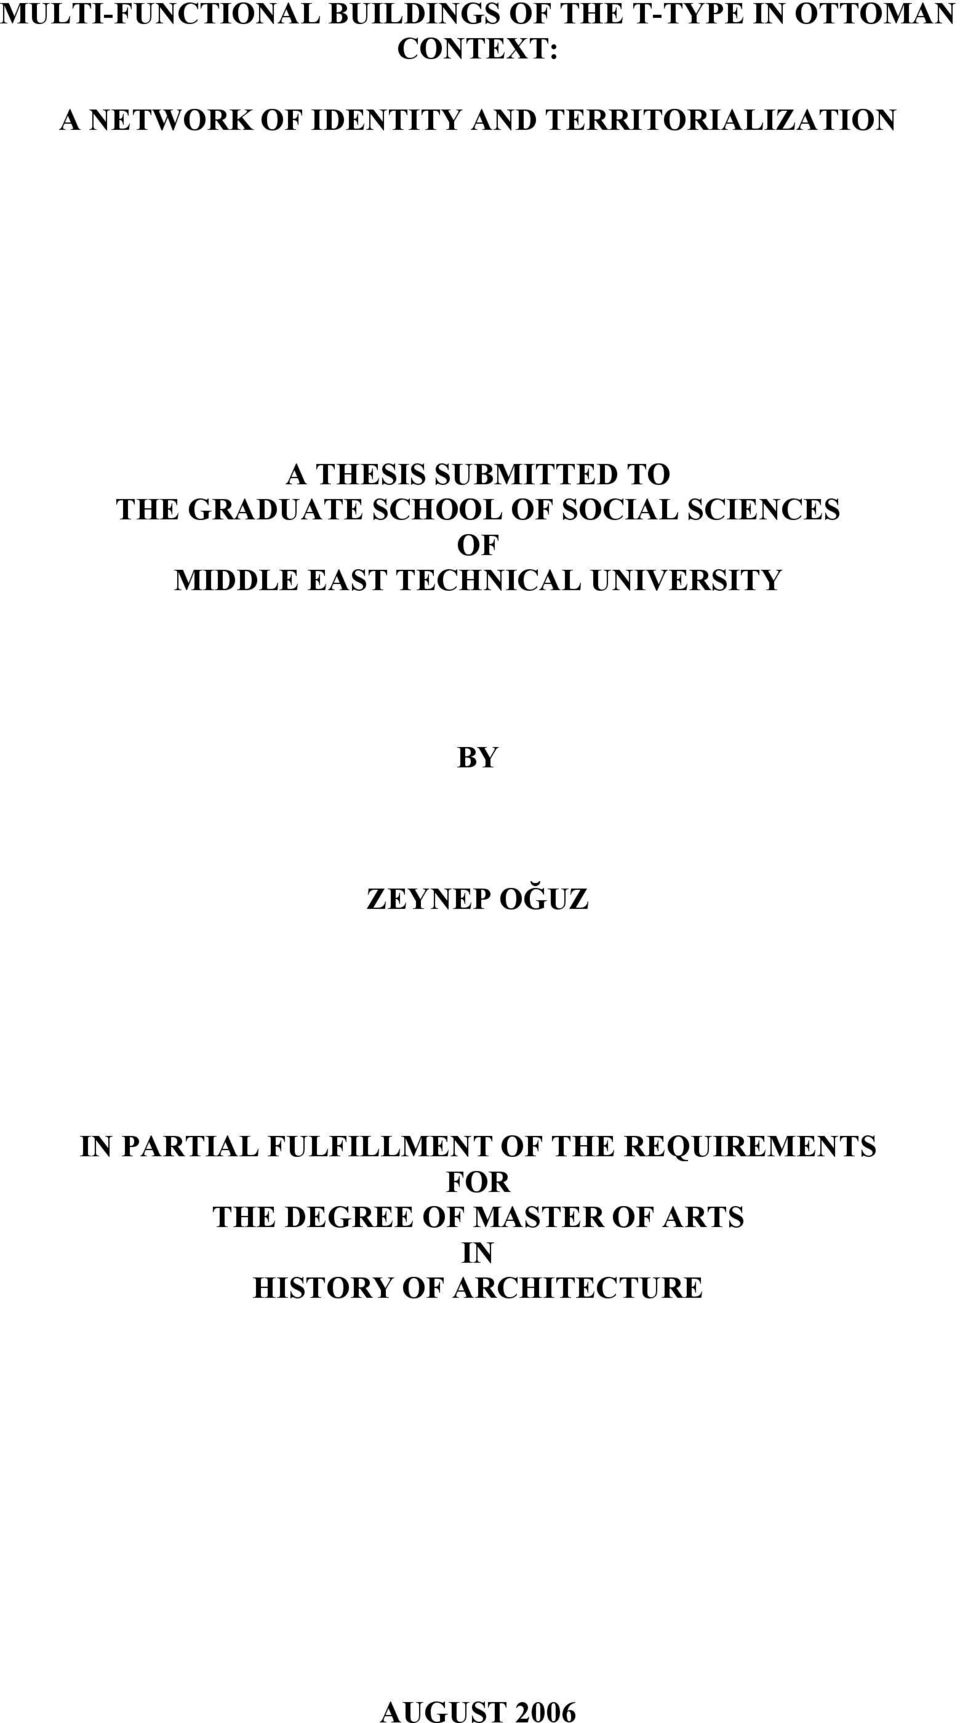 SCIENCES OF MIDDLE EAST TECHNICAL UNIVERSITY BY ZEYNEP OĞUZ IN PARTIAL FULFILLMENT